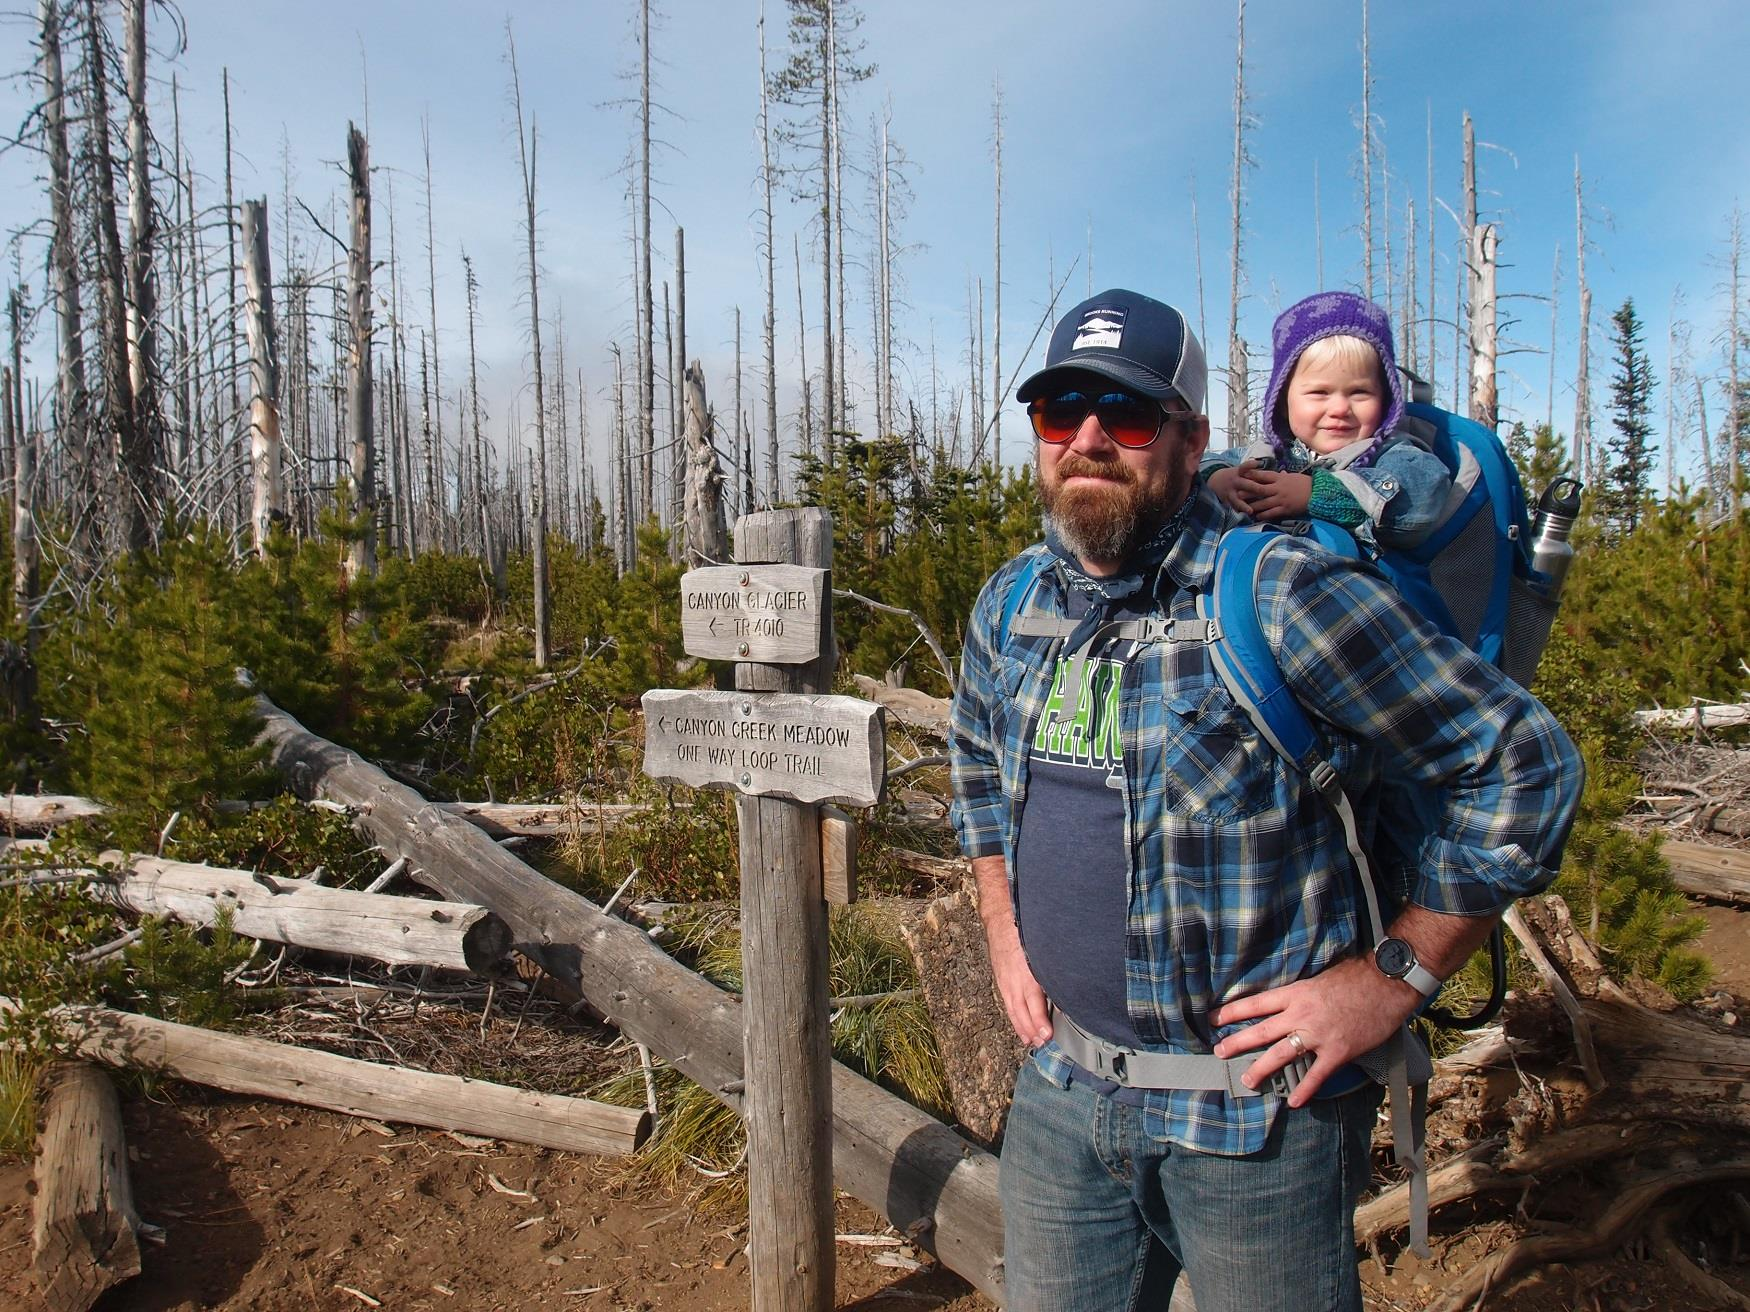 This is a father and daughter at the trailhead of the Canyon Creek Meadow Hike near Cold Springs Resort in Camp Sherman, Oregon